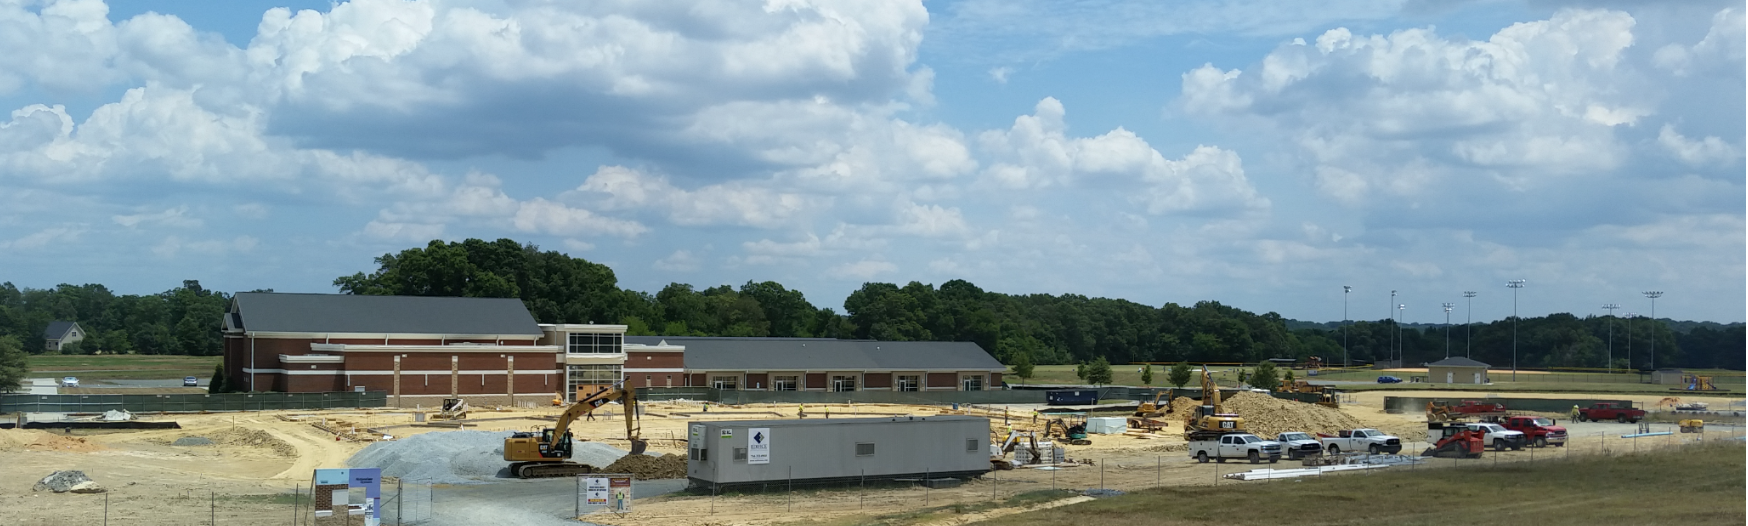 Live Feed: Hopewell Baptist Phase III – New Sanctuary